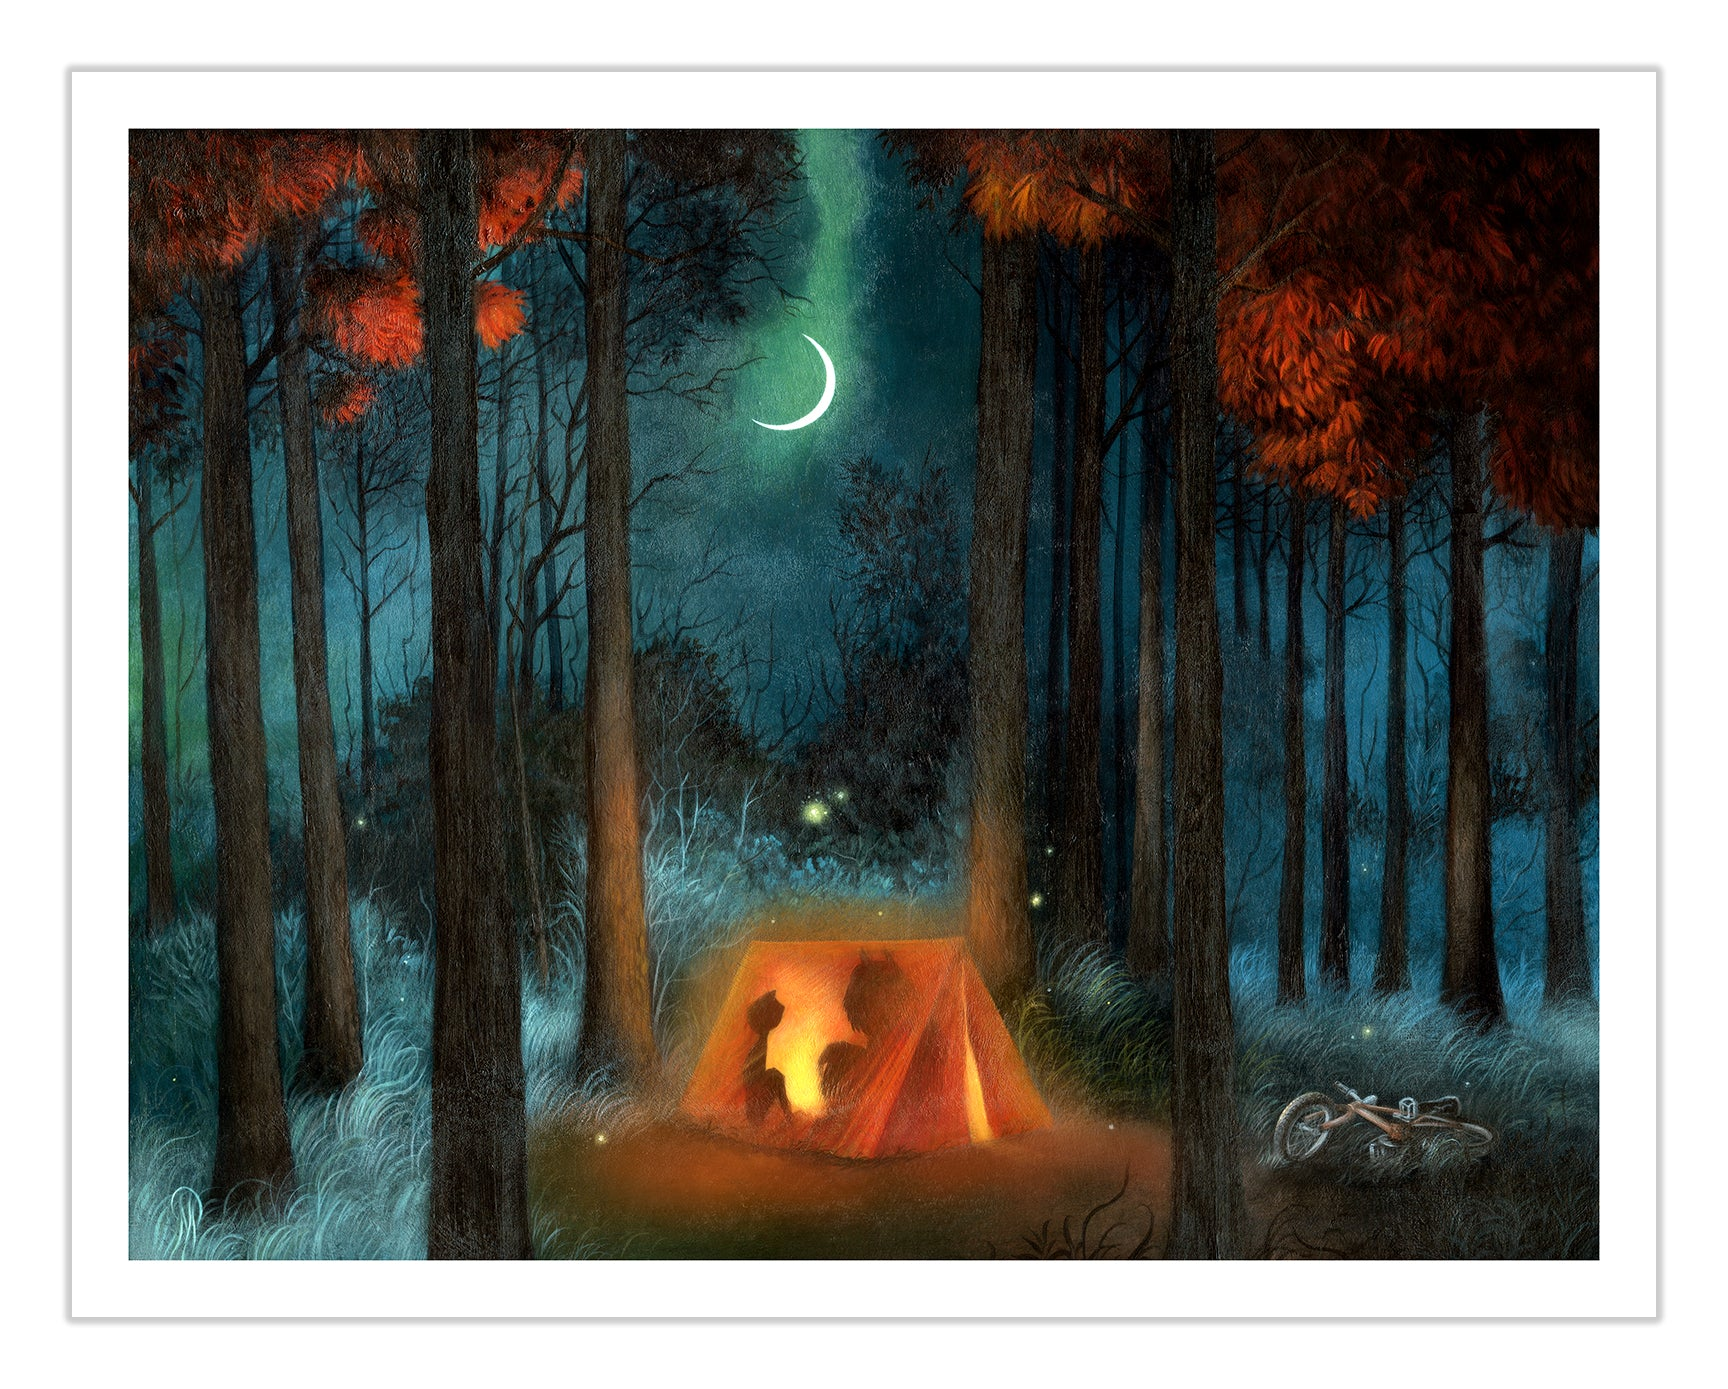 Campout (Limited Edition Print, by Dan May)